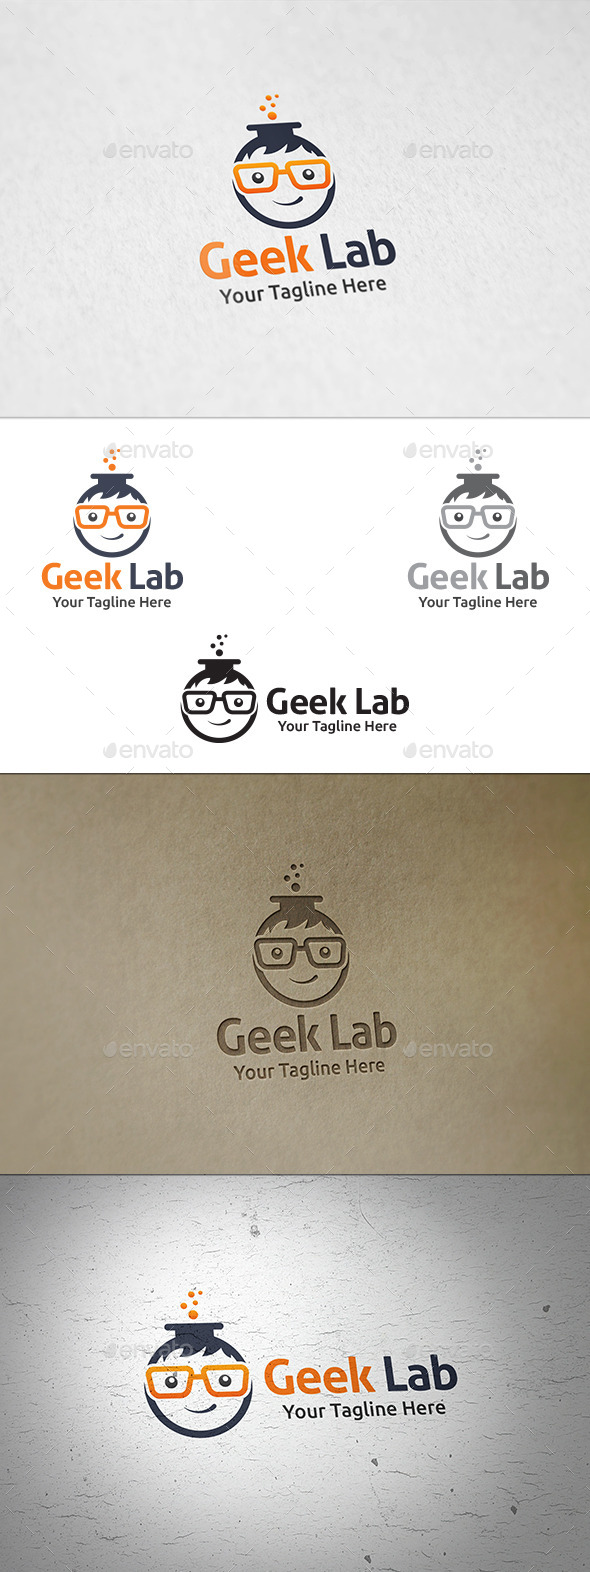 GraphicRiver Geek Lab Logo Template 11403728